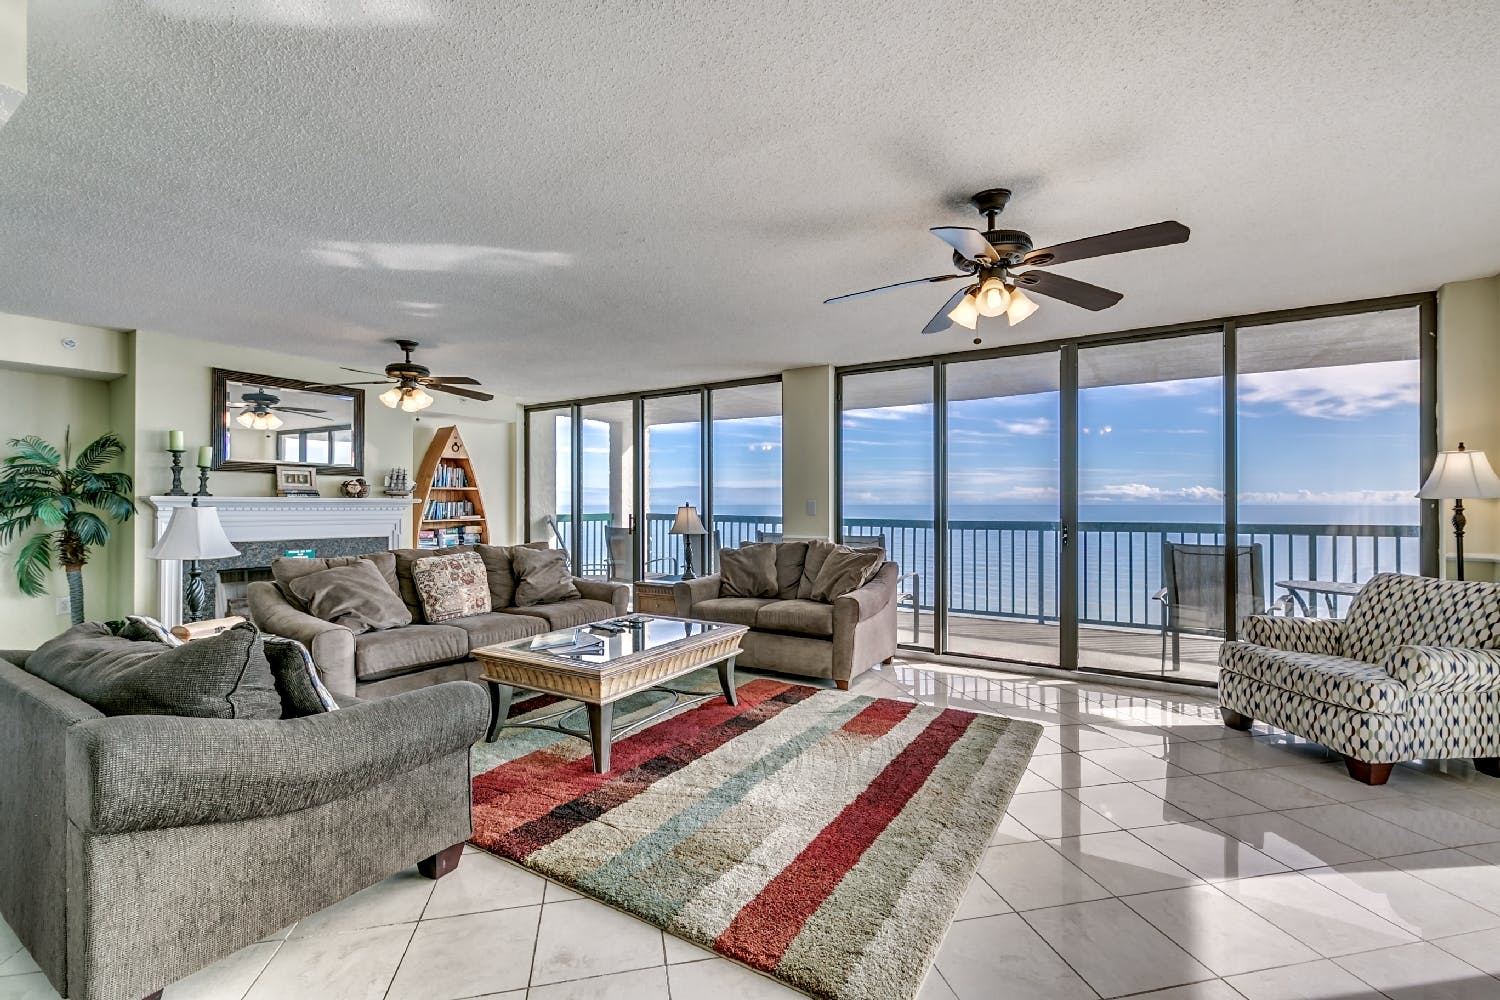 Myrtle beach penthouses oceanfront resort penthouses - 4 bedroom resorts in myrtle beach sc ...